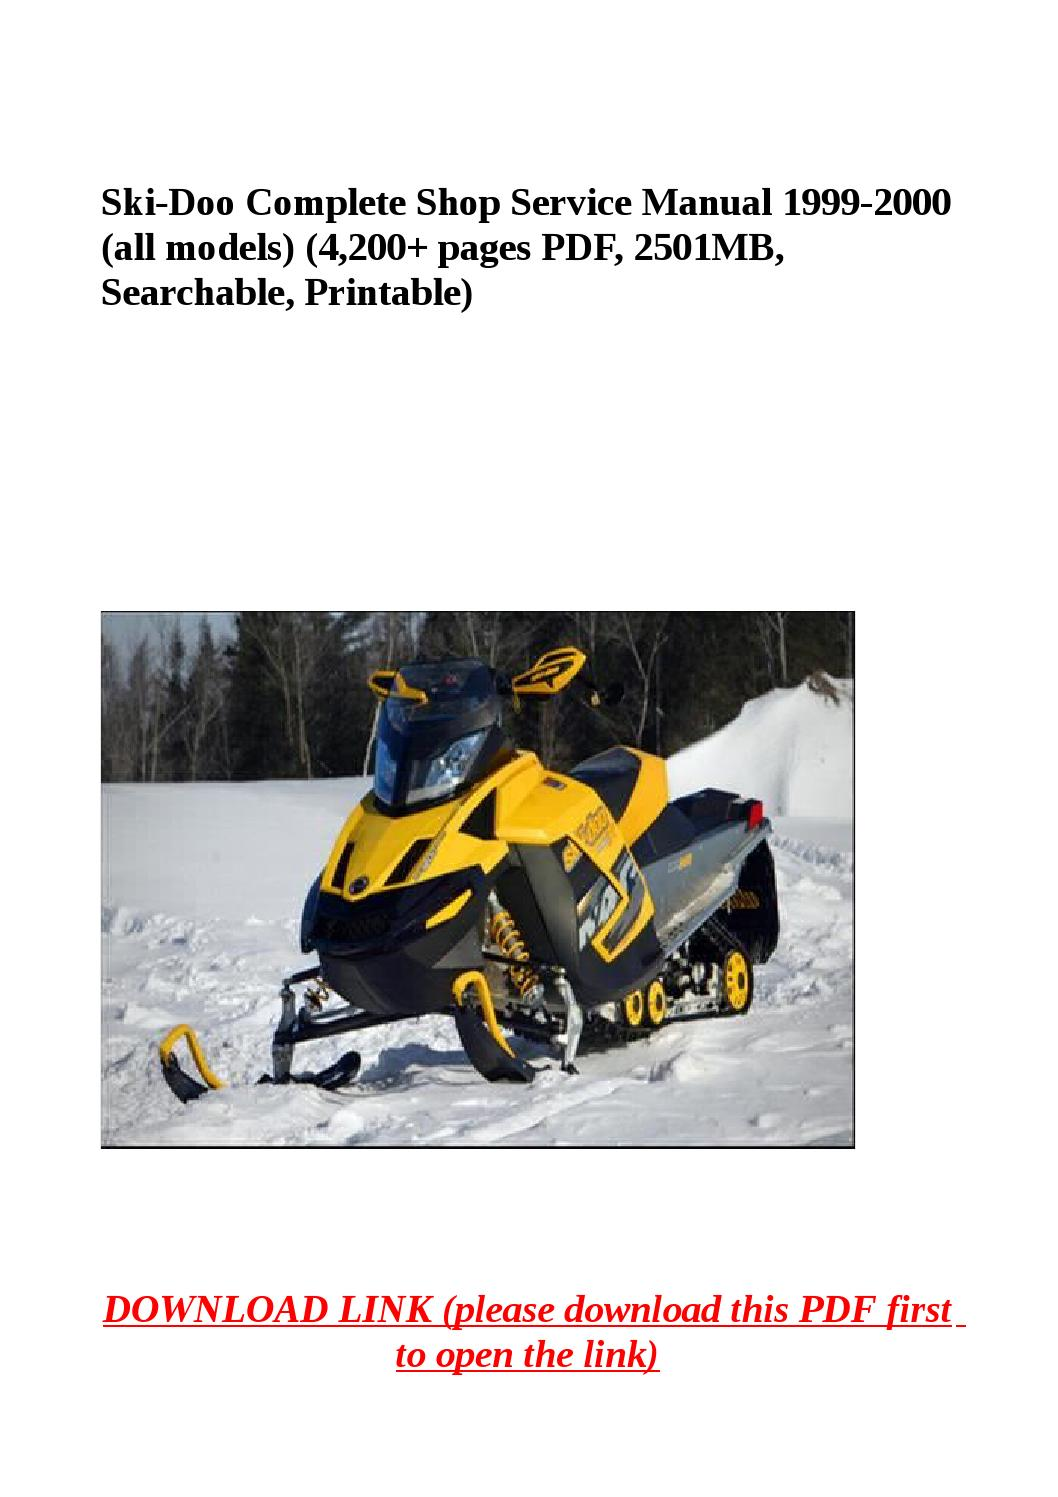 Ski doo complete shop service manual 1999 2000 (all models) (4,200 pages pdf,  2501mb, searchable, pr by yhkj - issuu